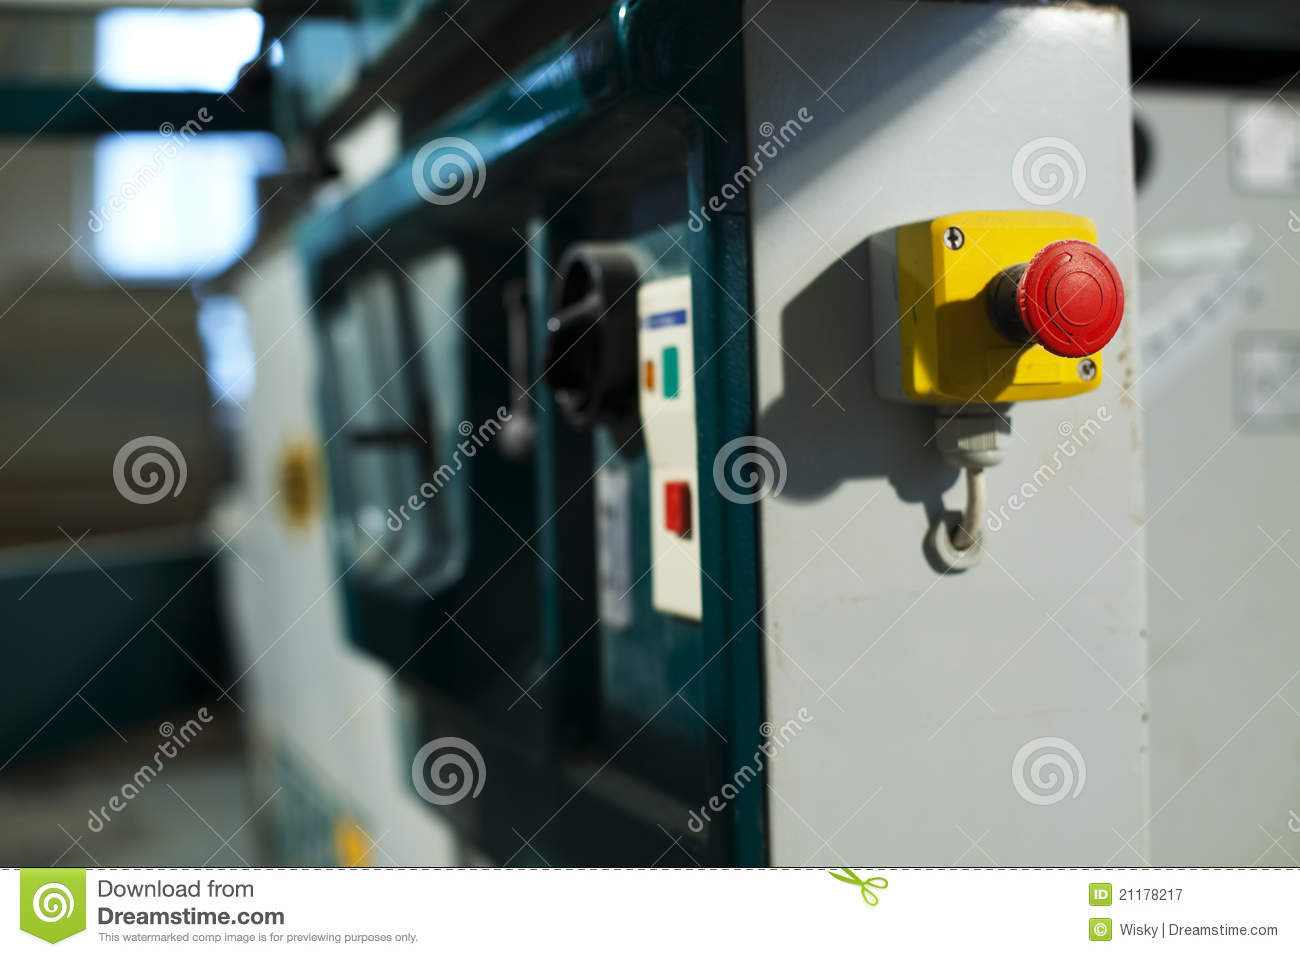 Emergency stop icon clipart emergency off - Royalty Free Stock Photo Download Emergency Stop